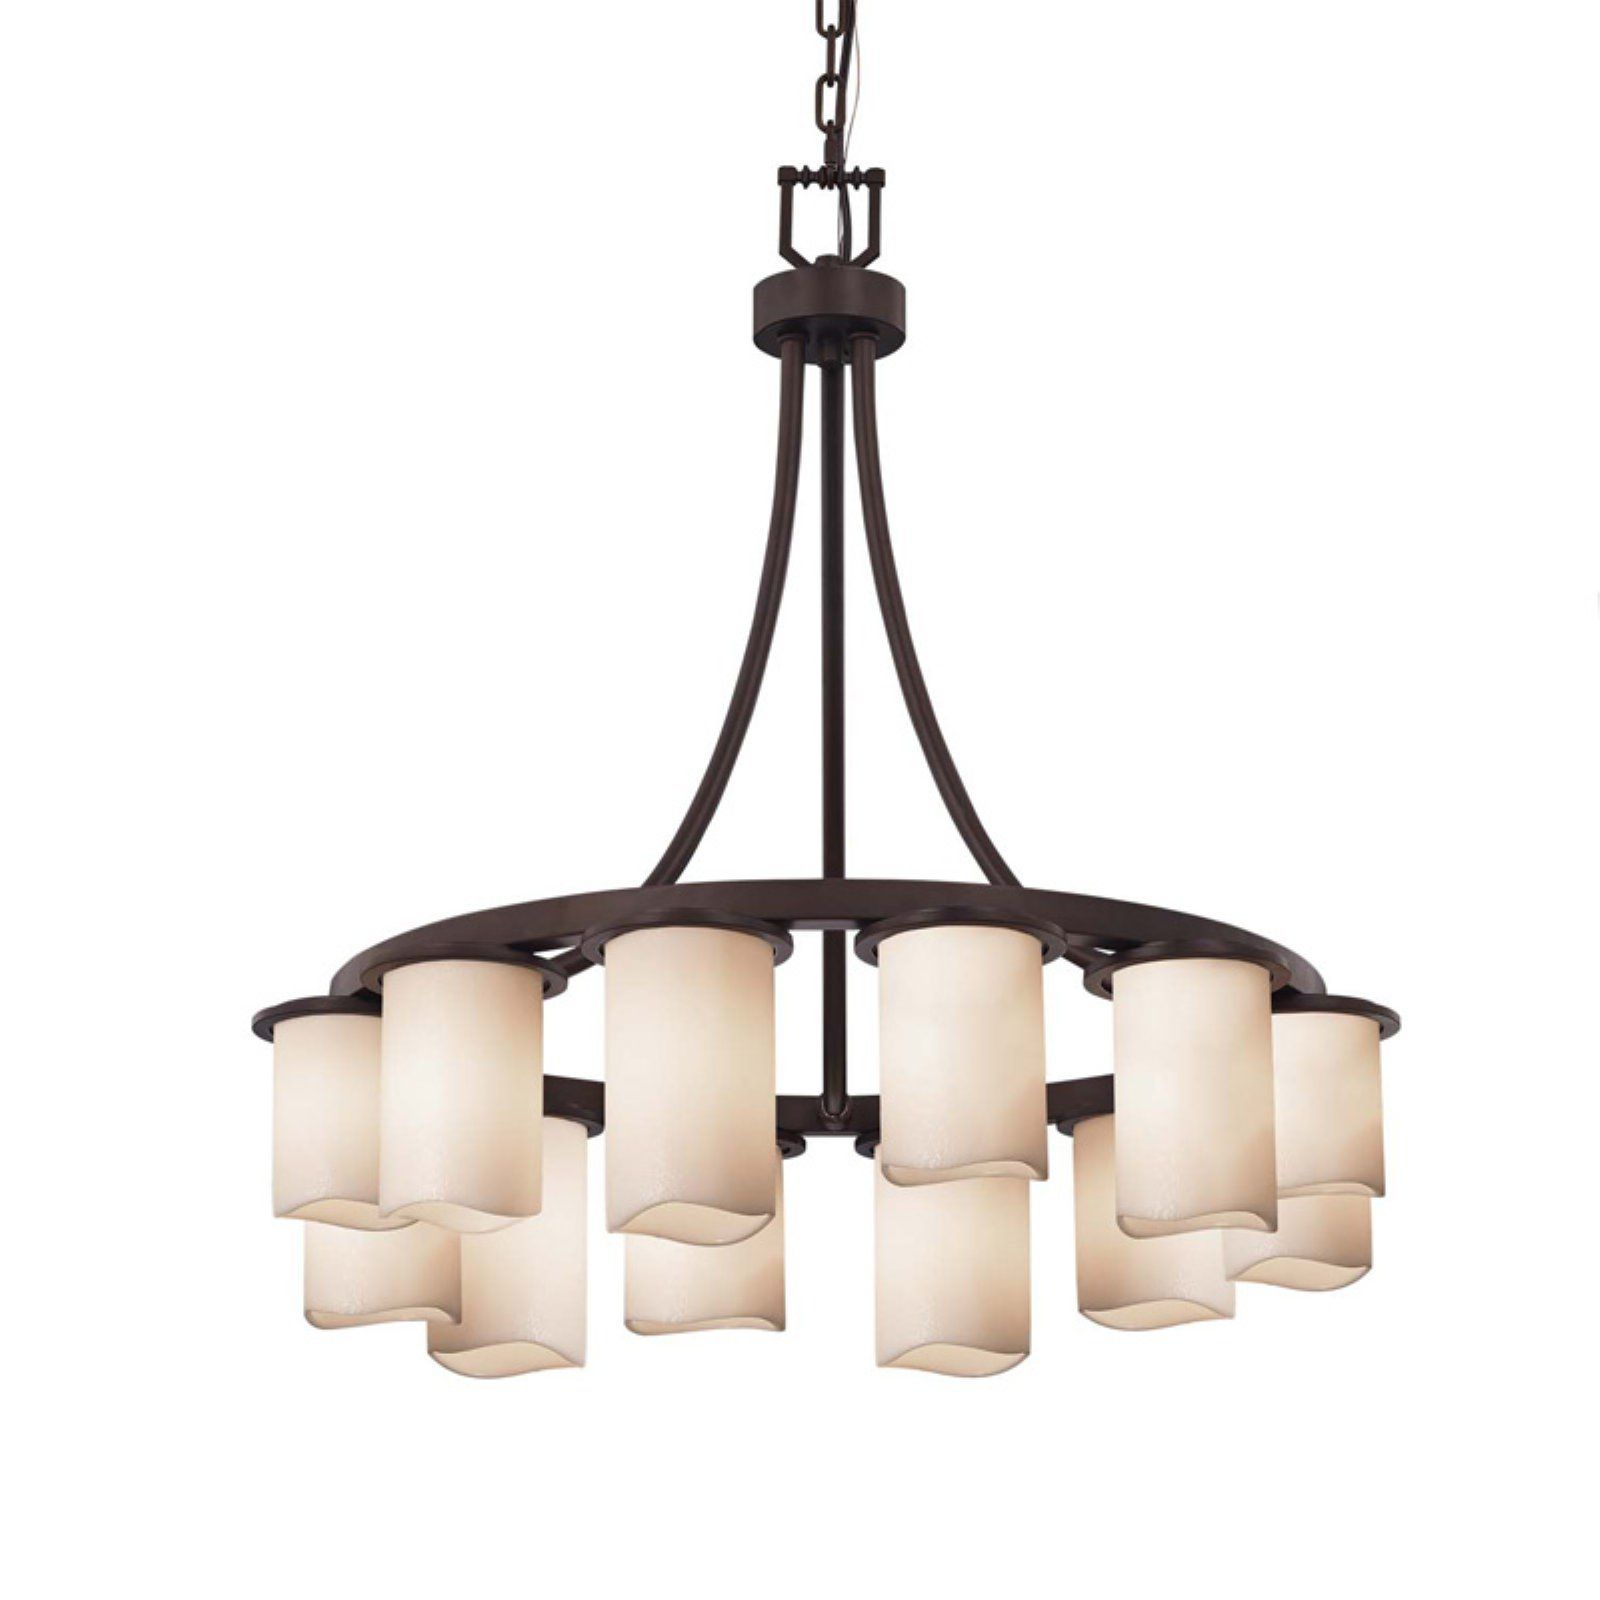 Justice Design Group Candlearia Dakota Cndl 873 Downlight Cylinder With Melted Rim Shade Chandelier Justice Design Chandelier Shades Candle Shades